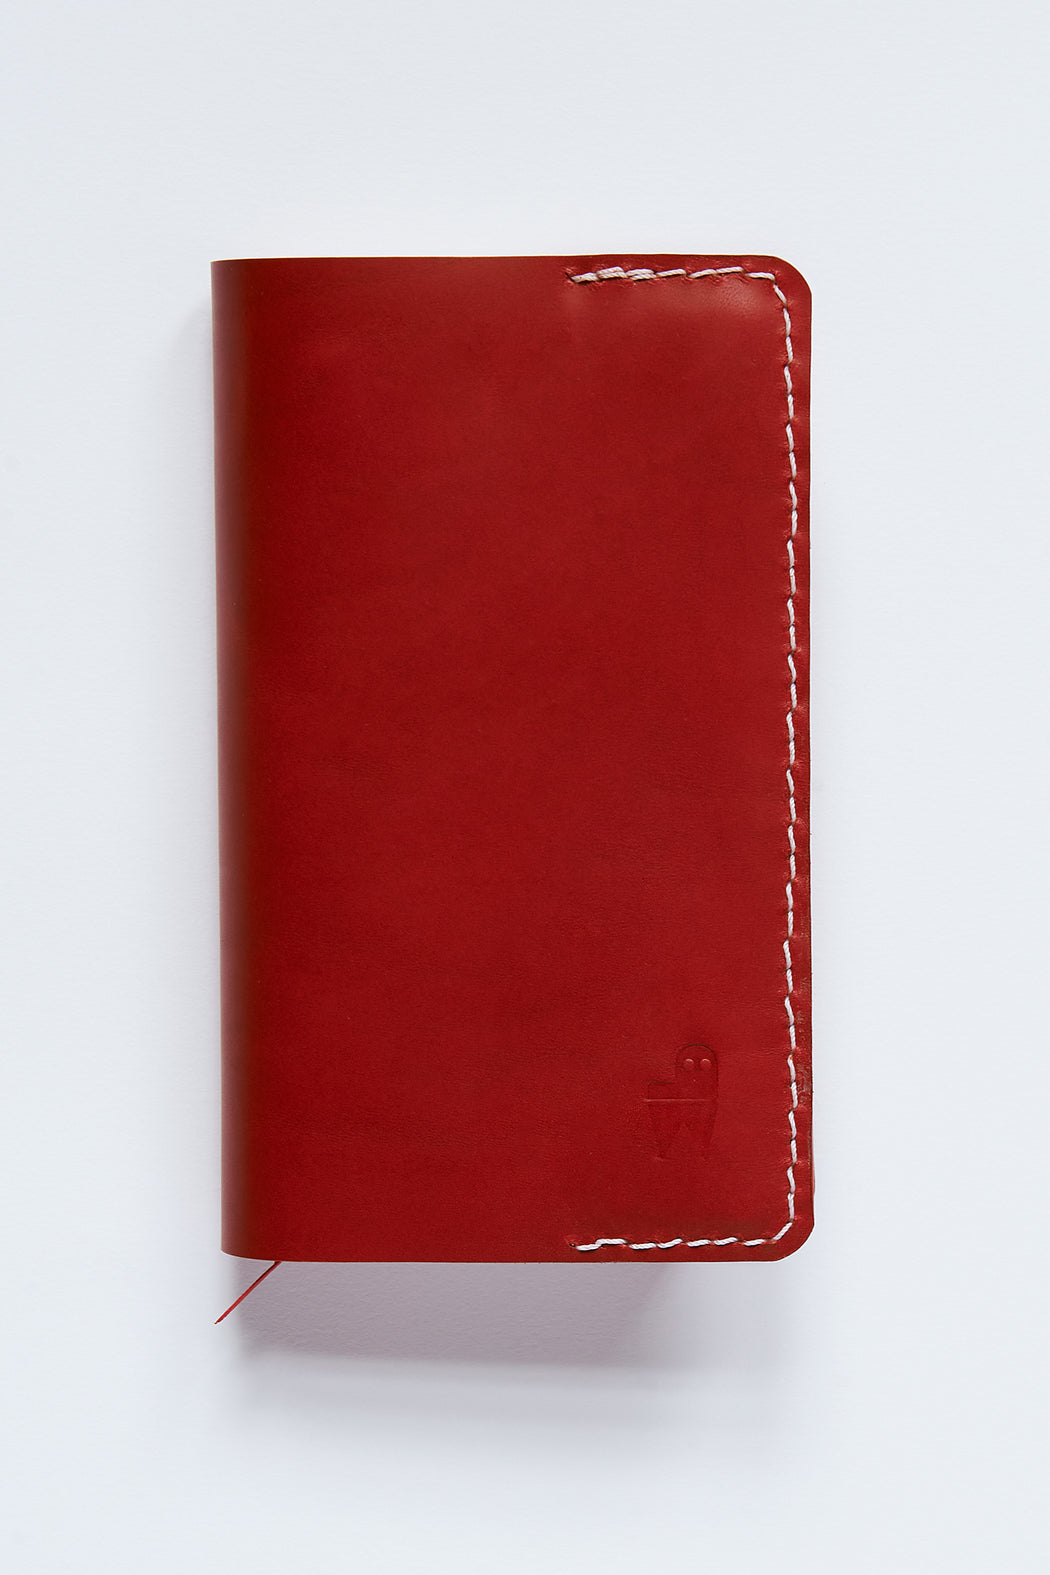 PM Leather Five-Year Journal - Red